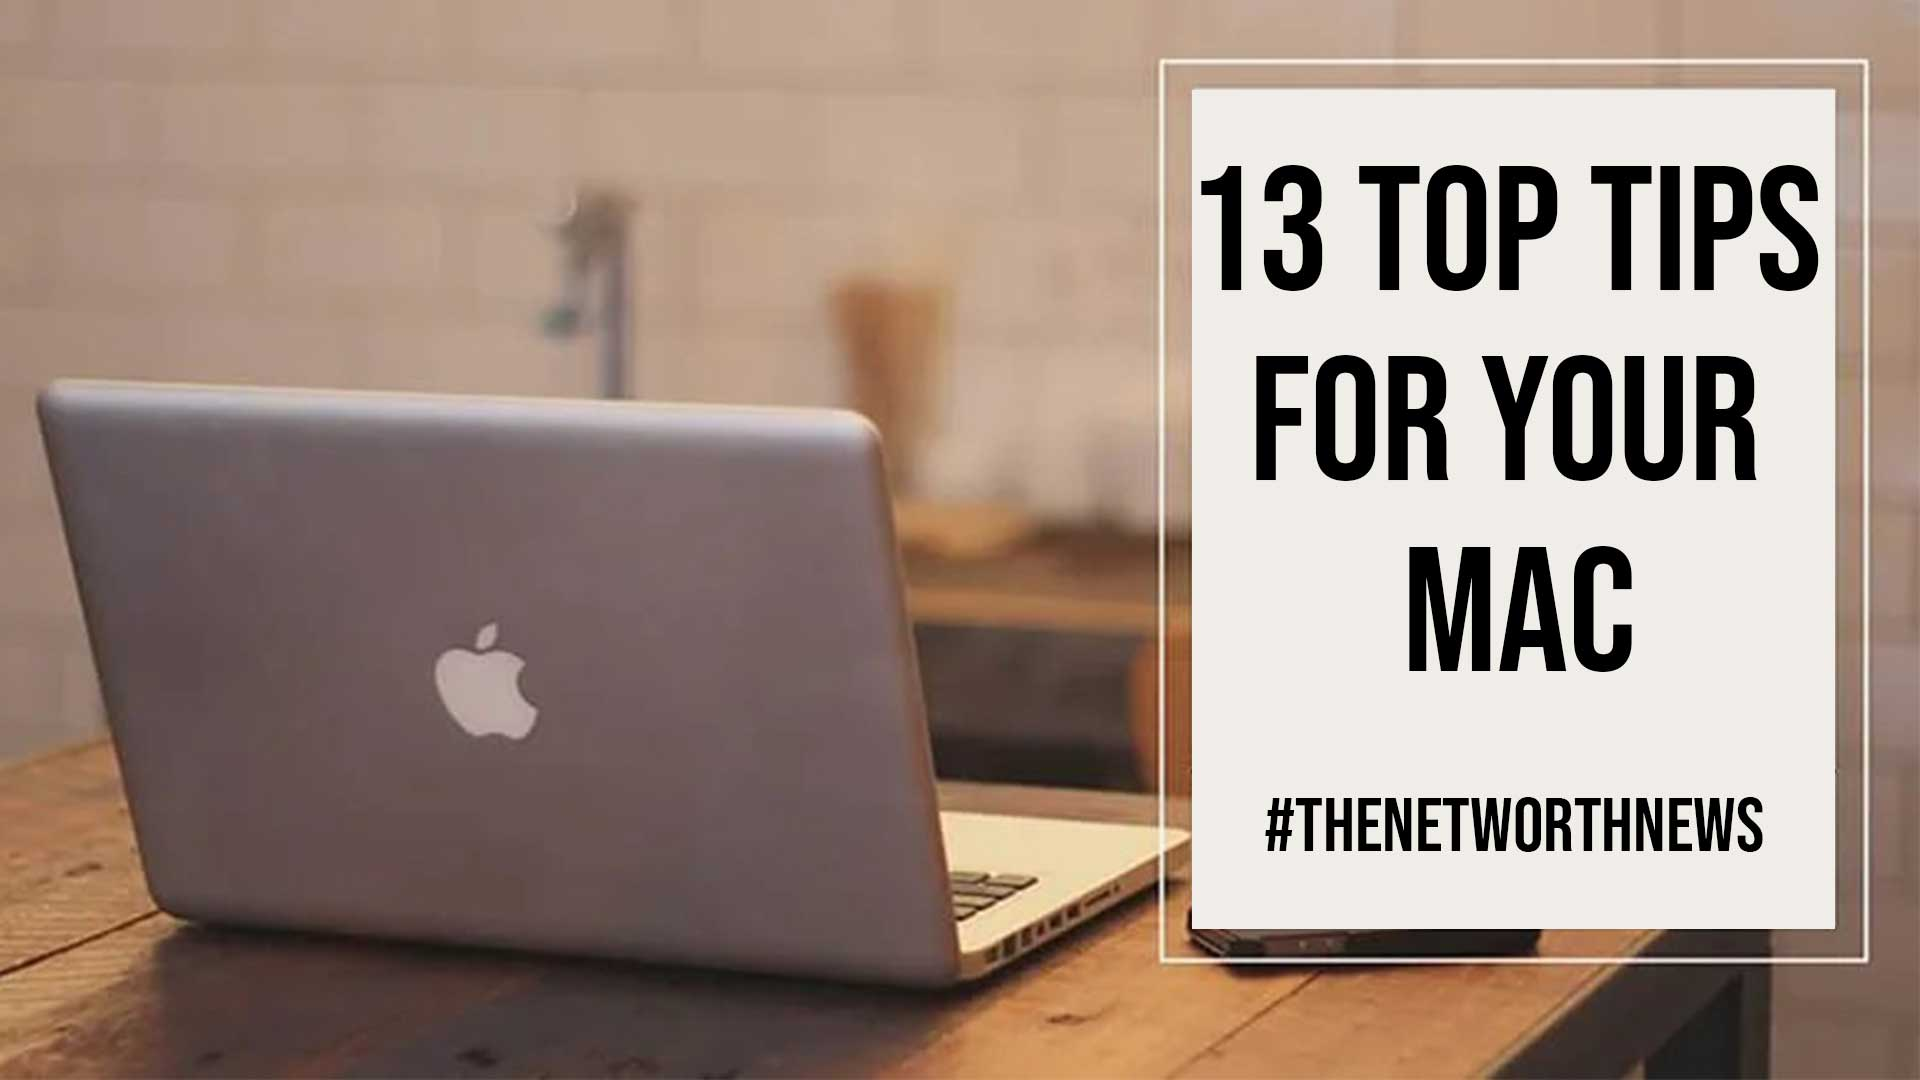 13 Top Tips for Your Mac